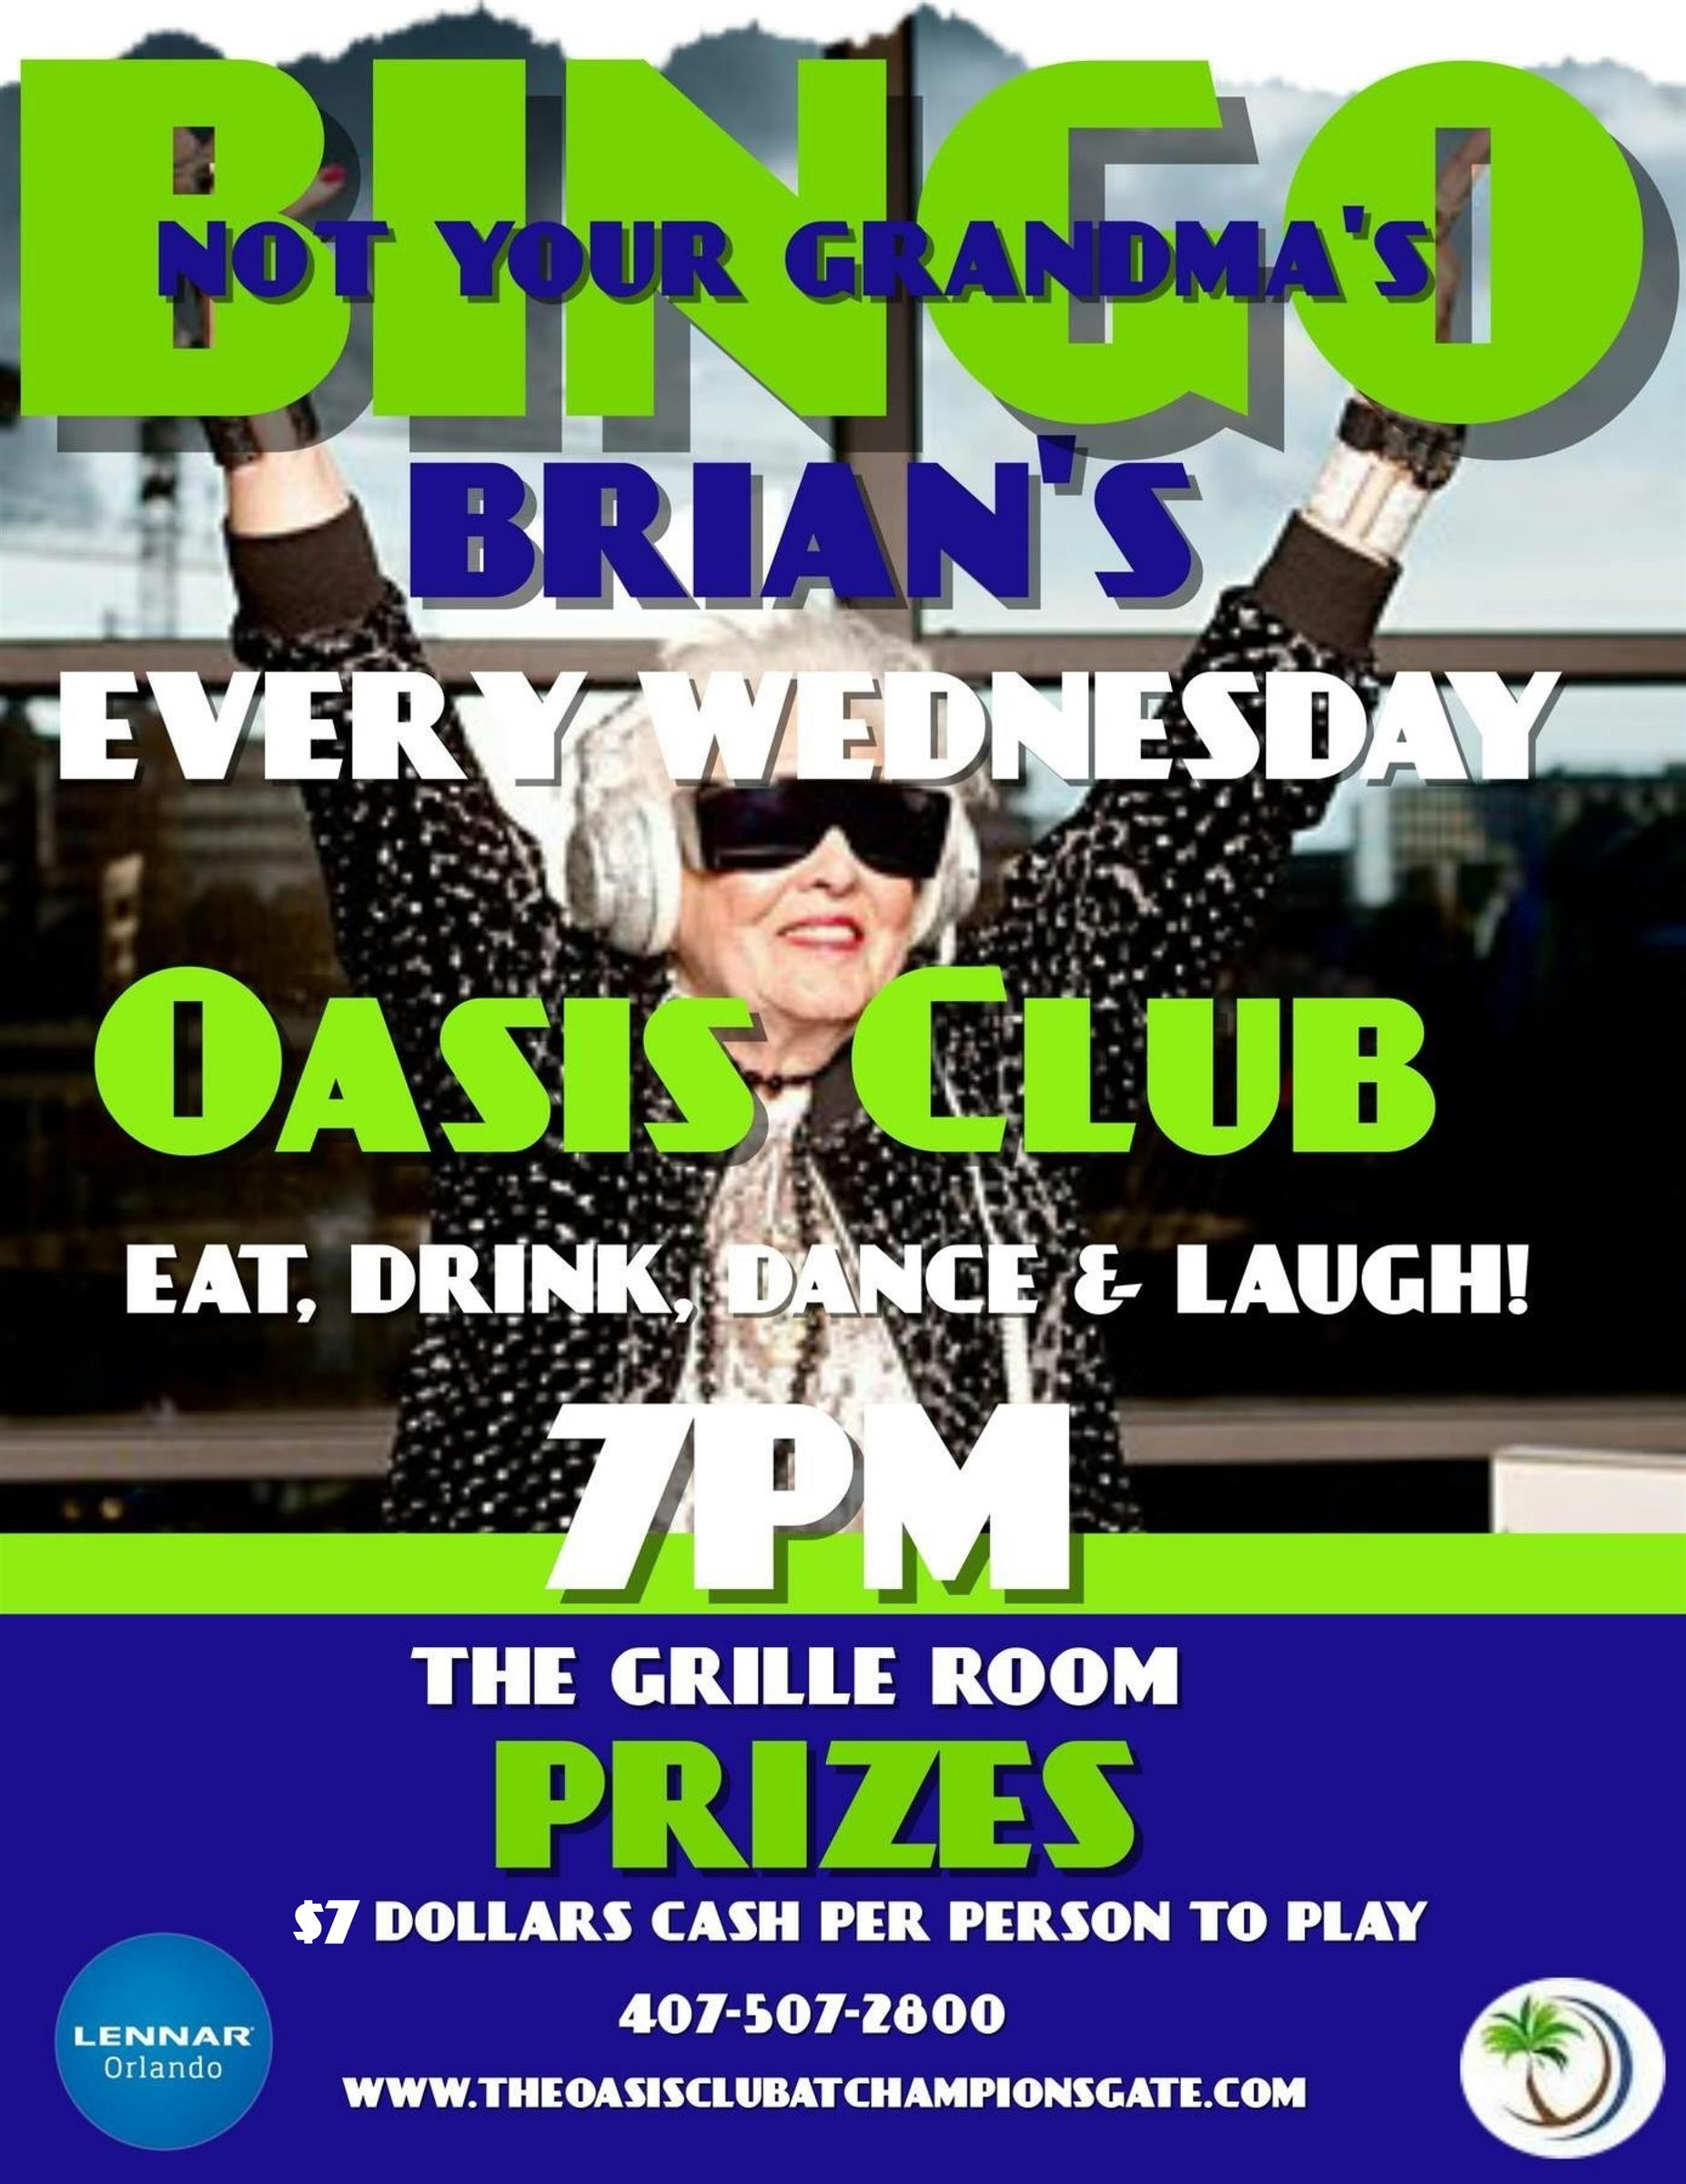 Brian's Not your Grandma's BINGO. every Wednesday at the Oasis Club, Eat, Drink, Dance & Laugh! At 7pm in the Grille Room/ Prizes; $7 cash per person to play. 407-507-2800. 1520 Oasis Club Blvd, Championsgate FL, 33896.